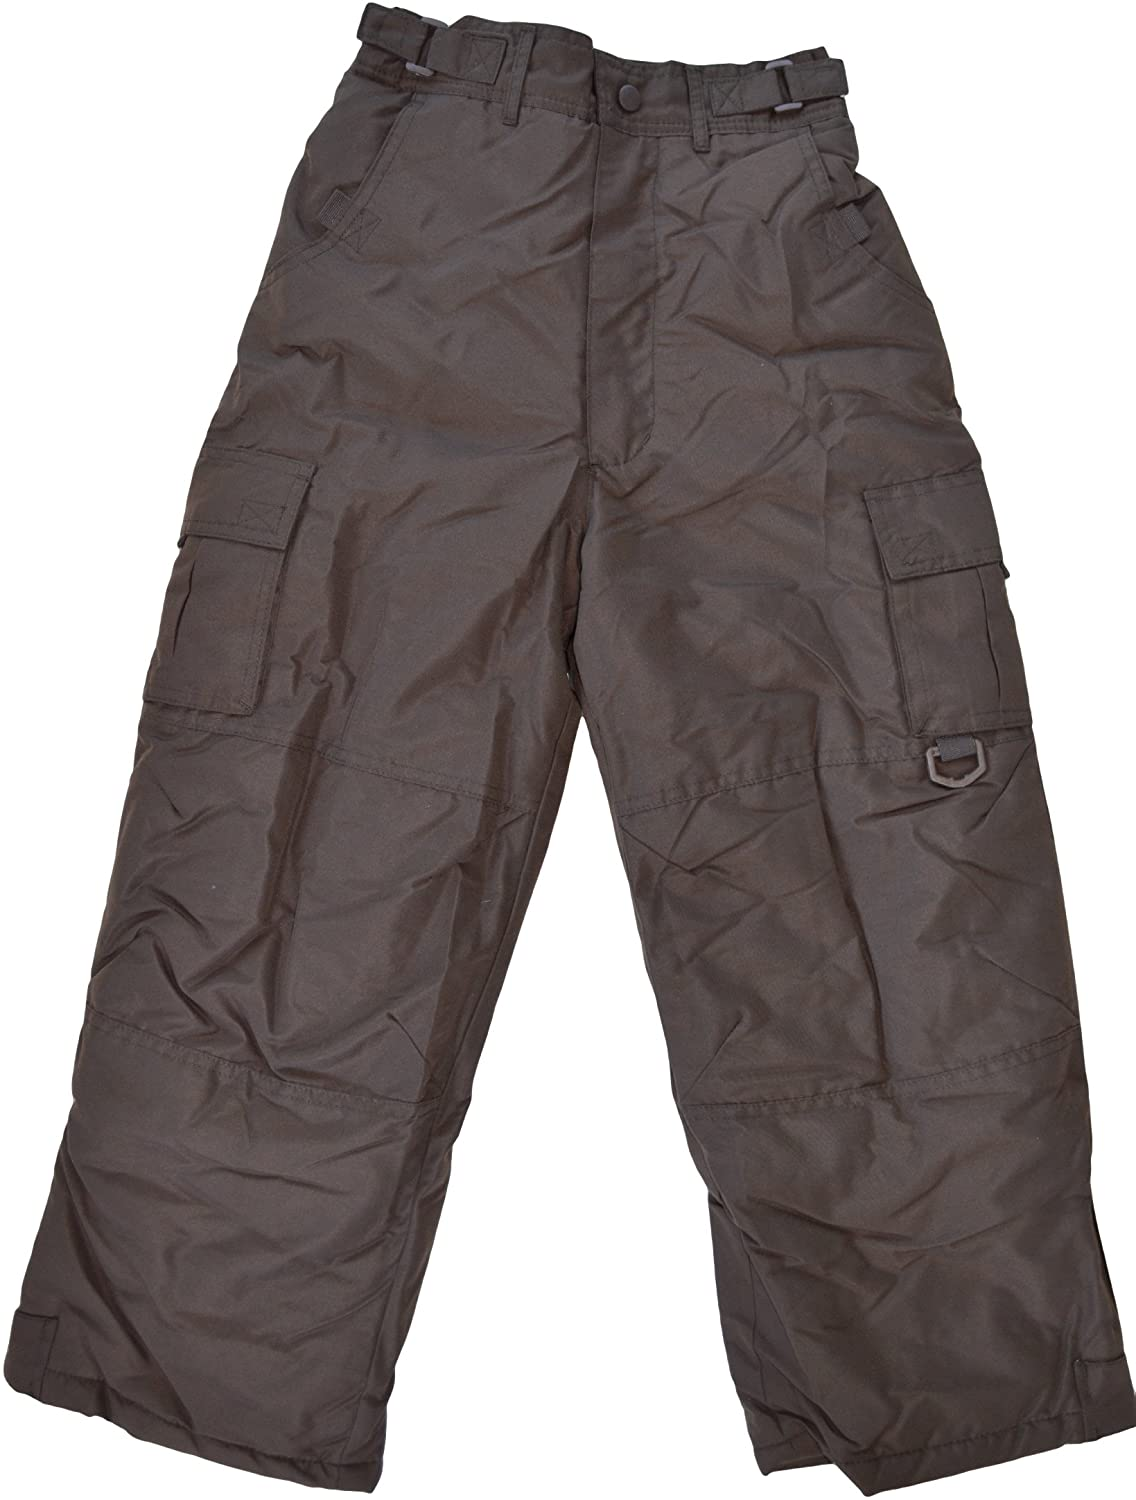 Rothschild Girls Insulated Snow Pant Cocoa Brown (6X)